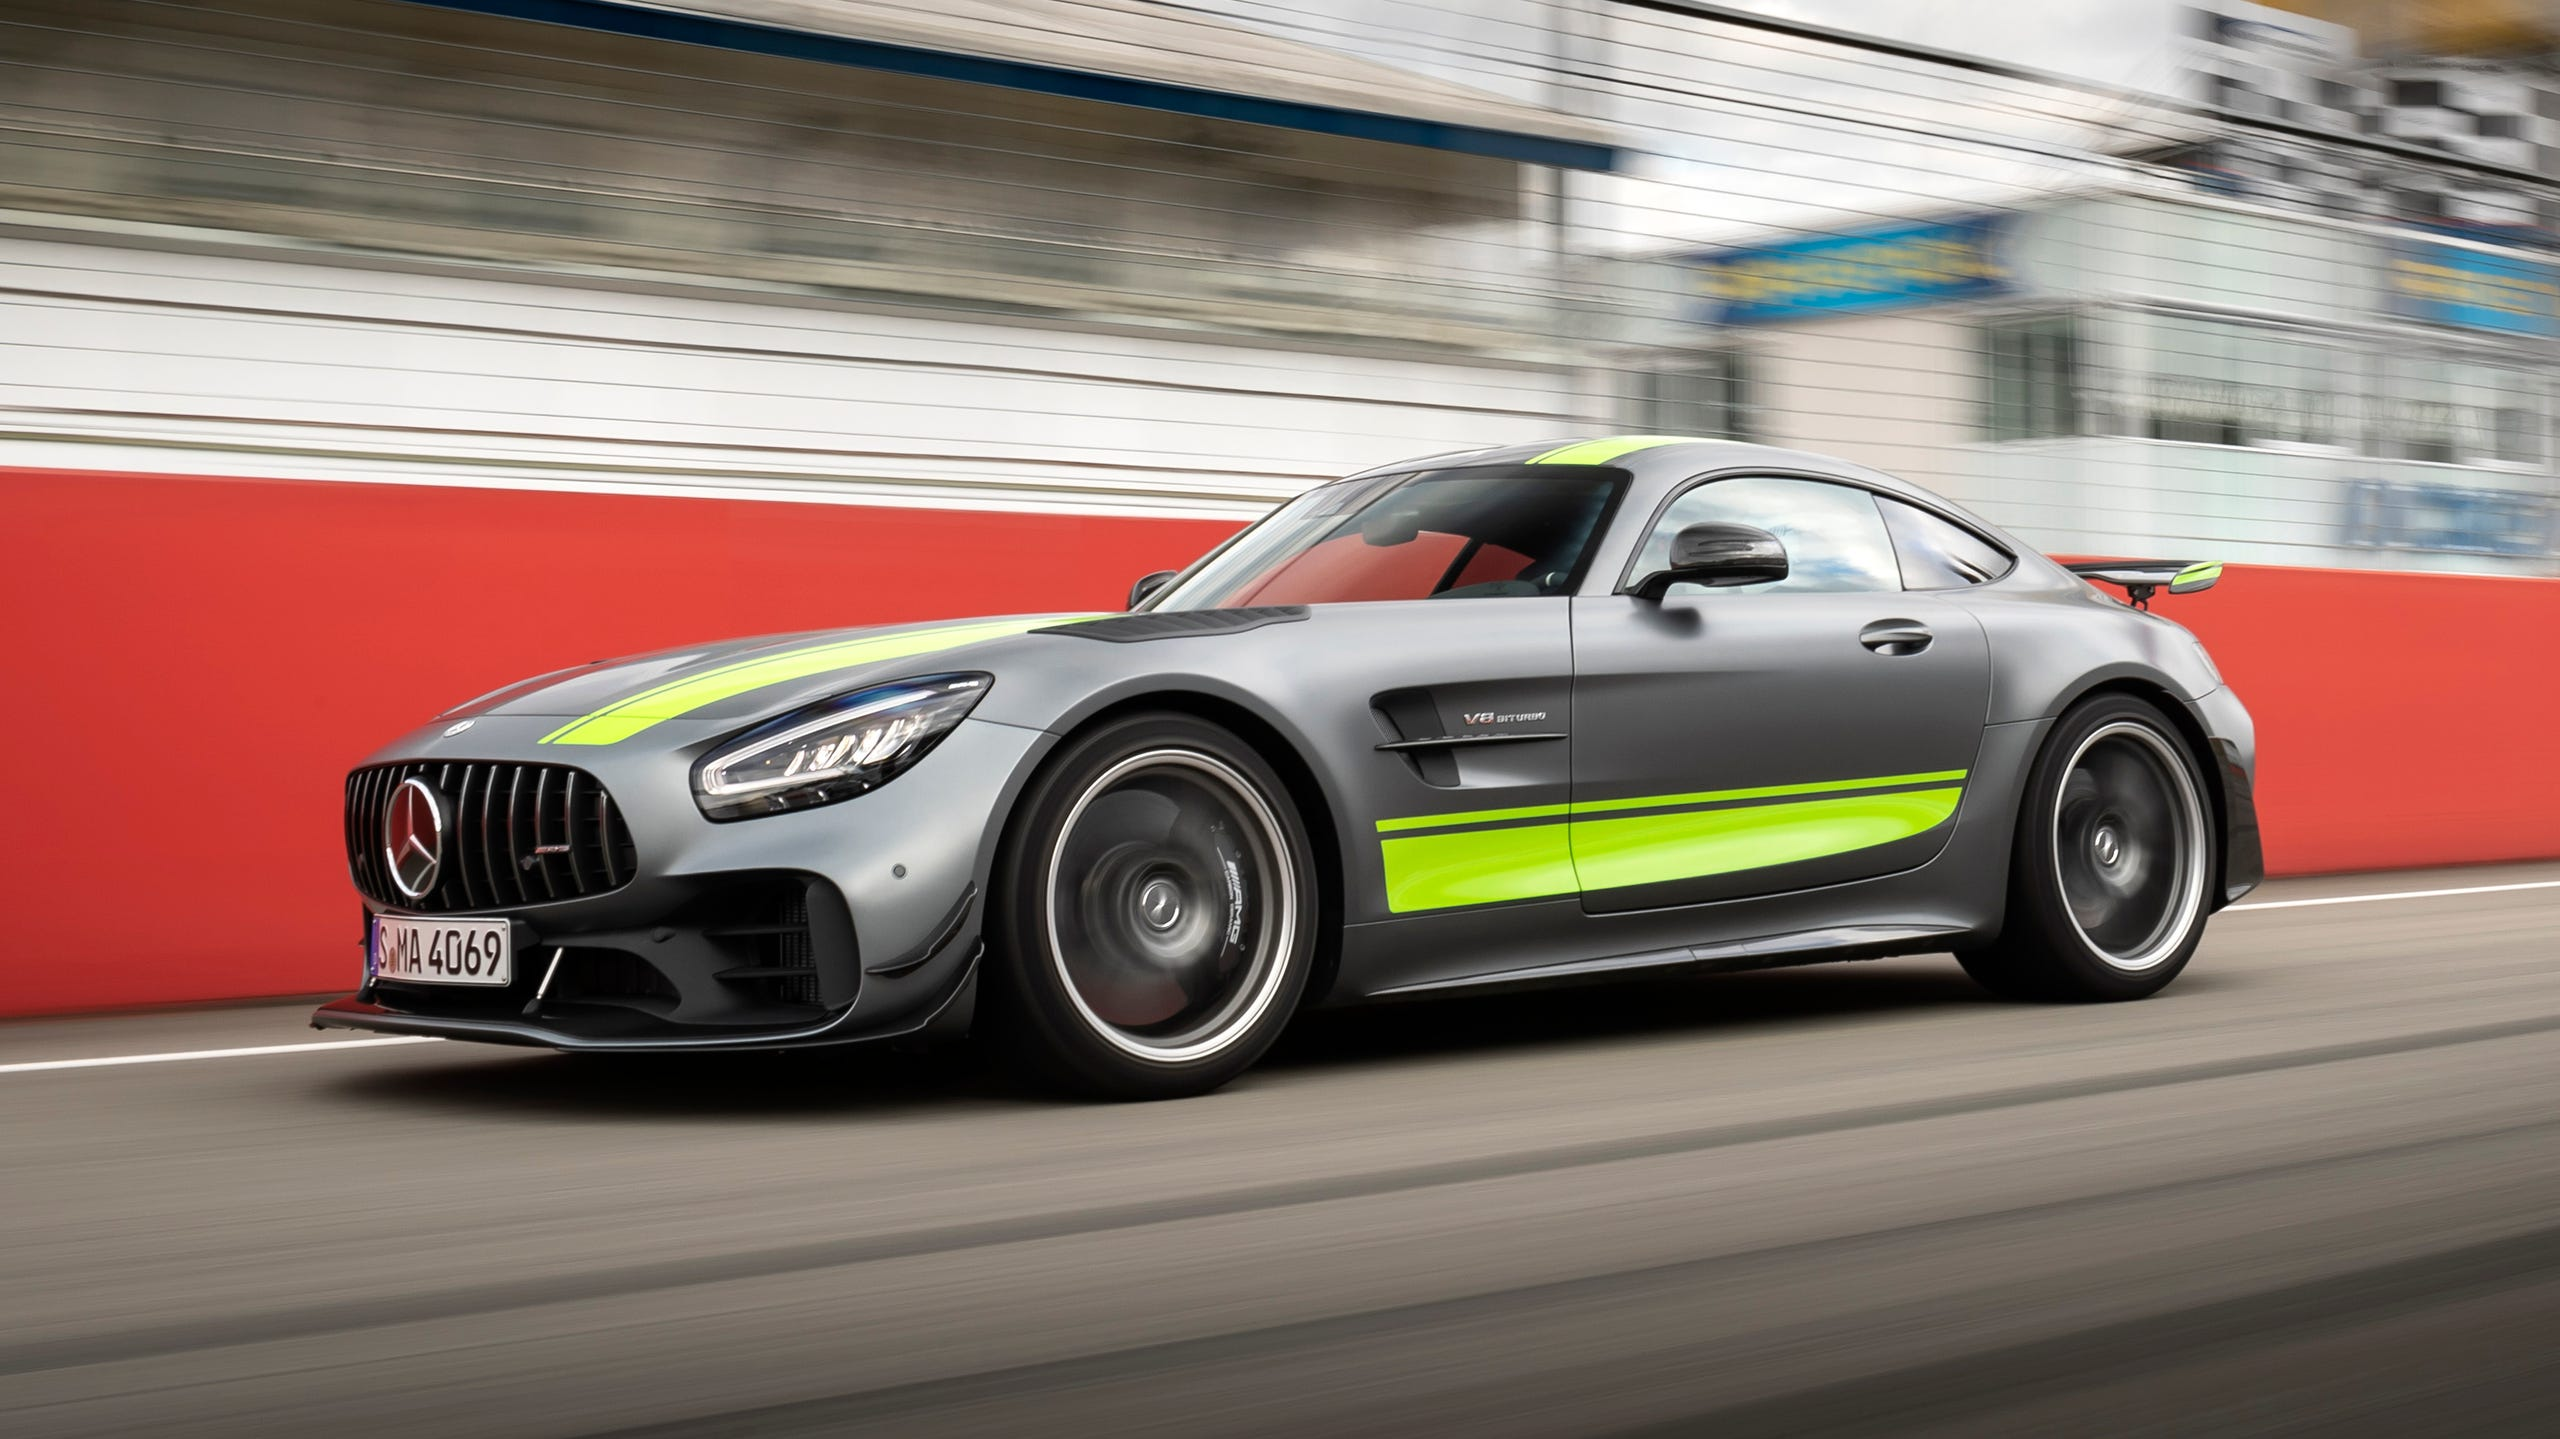 Mercedes Benz 2020 Amg Gt R Pro Comes With 200 000 Price Tag